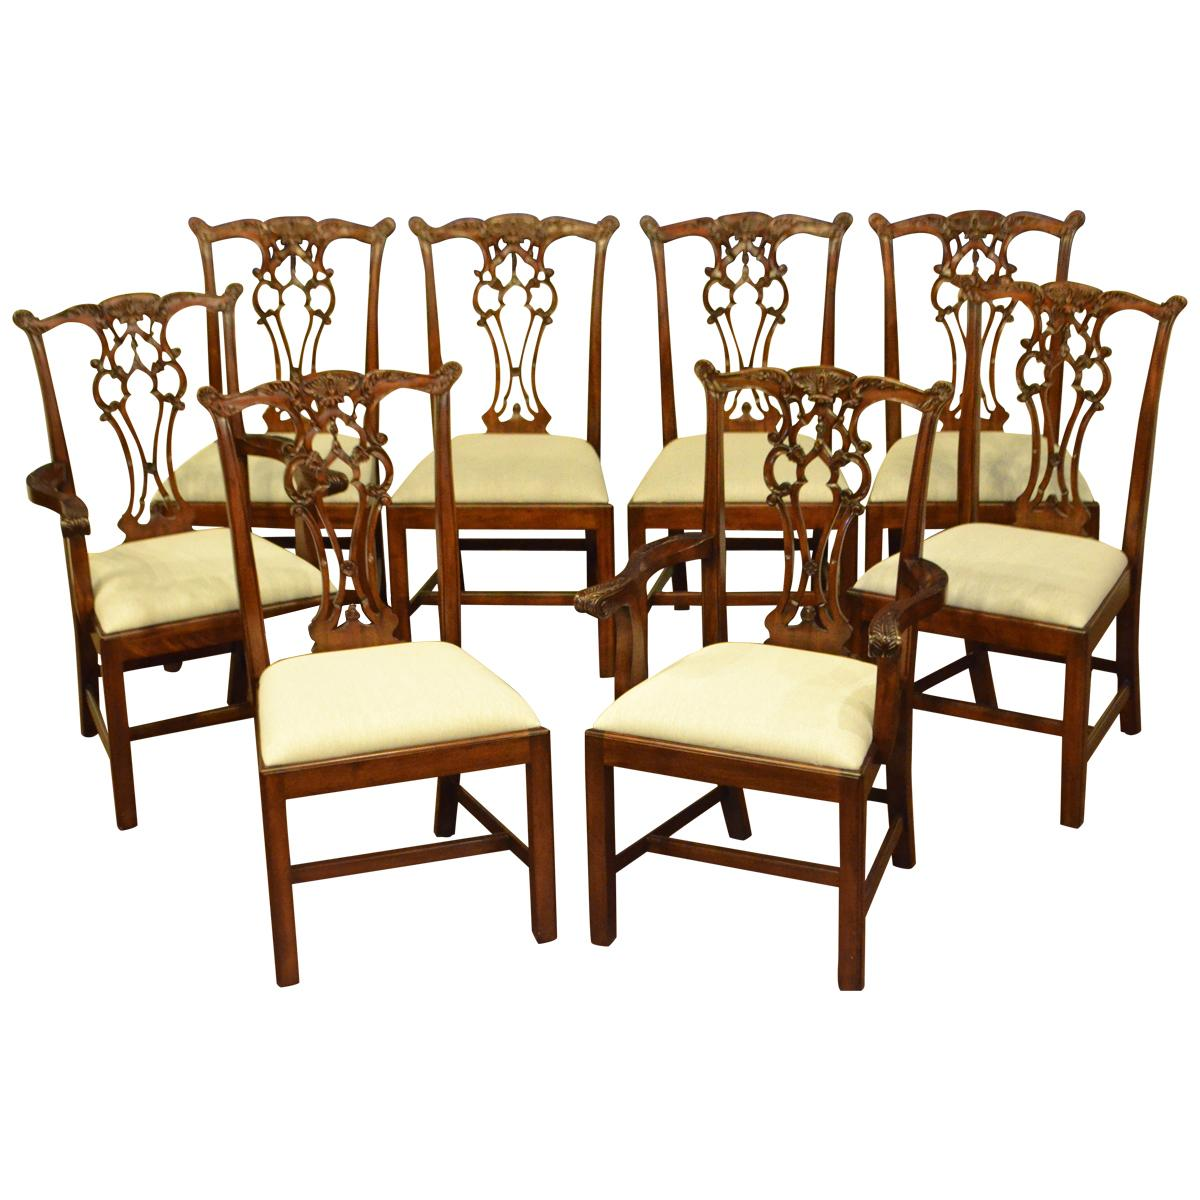 Outstanding Leighton Hall Furniture Suwanee Ga 30024 1Stdibs Andrewgaddart Wooden Chair Designs For Living Room Andrewgaddartcom